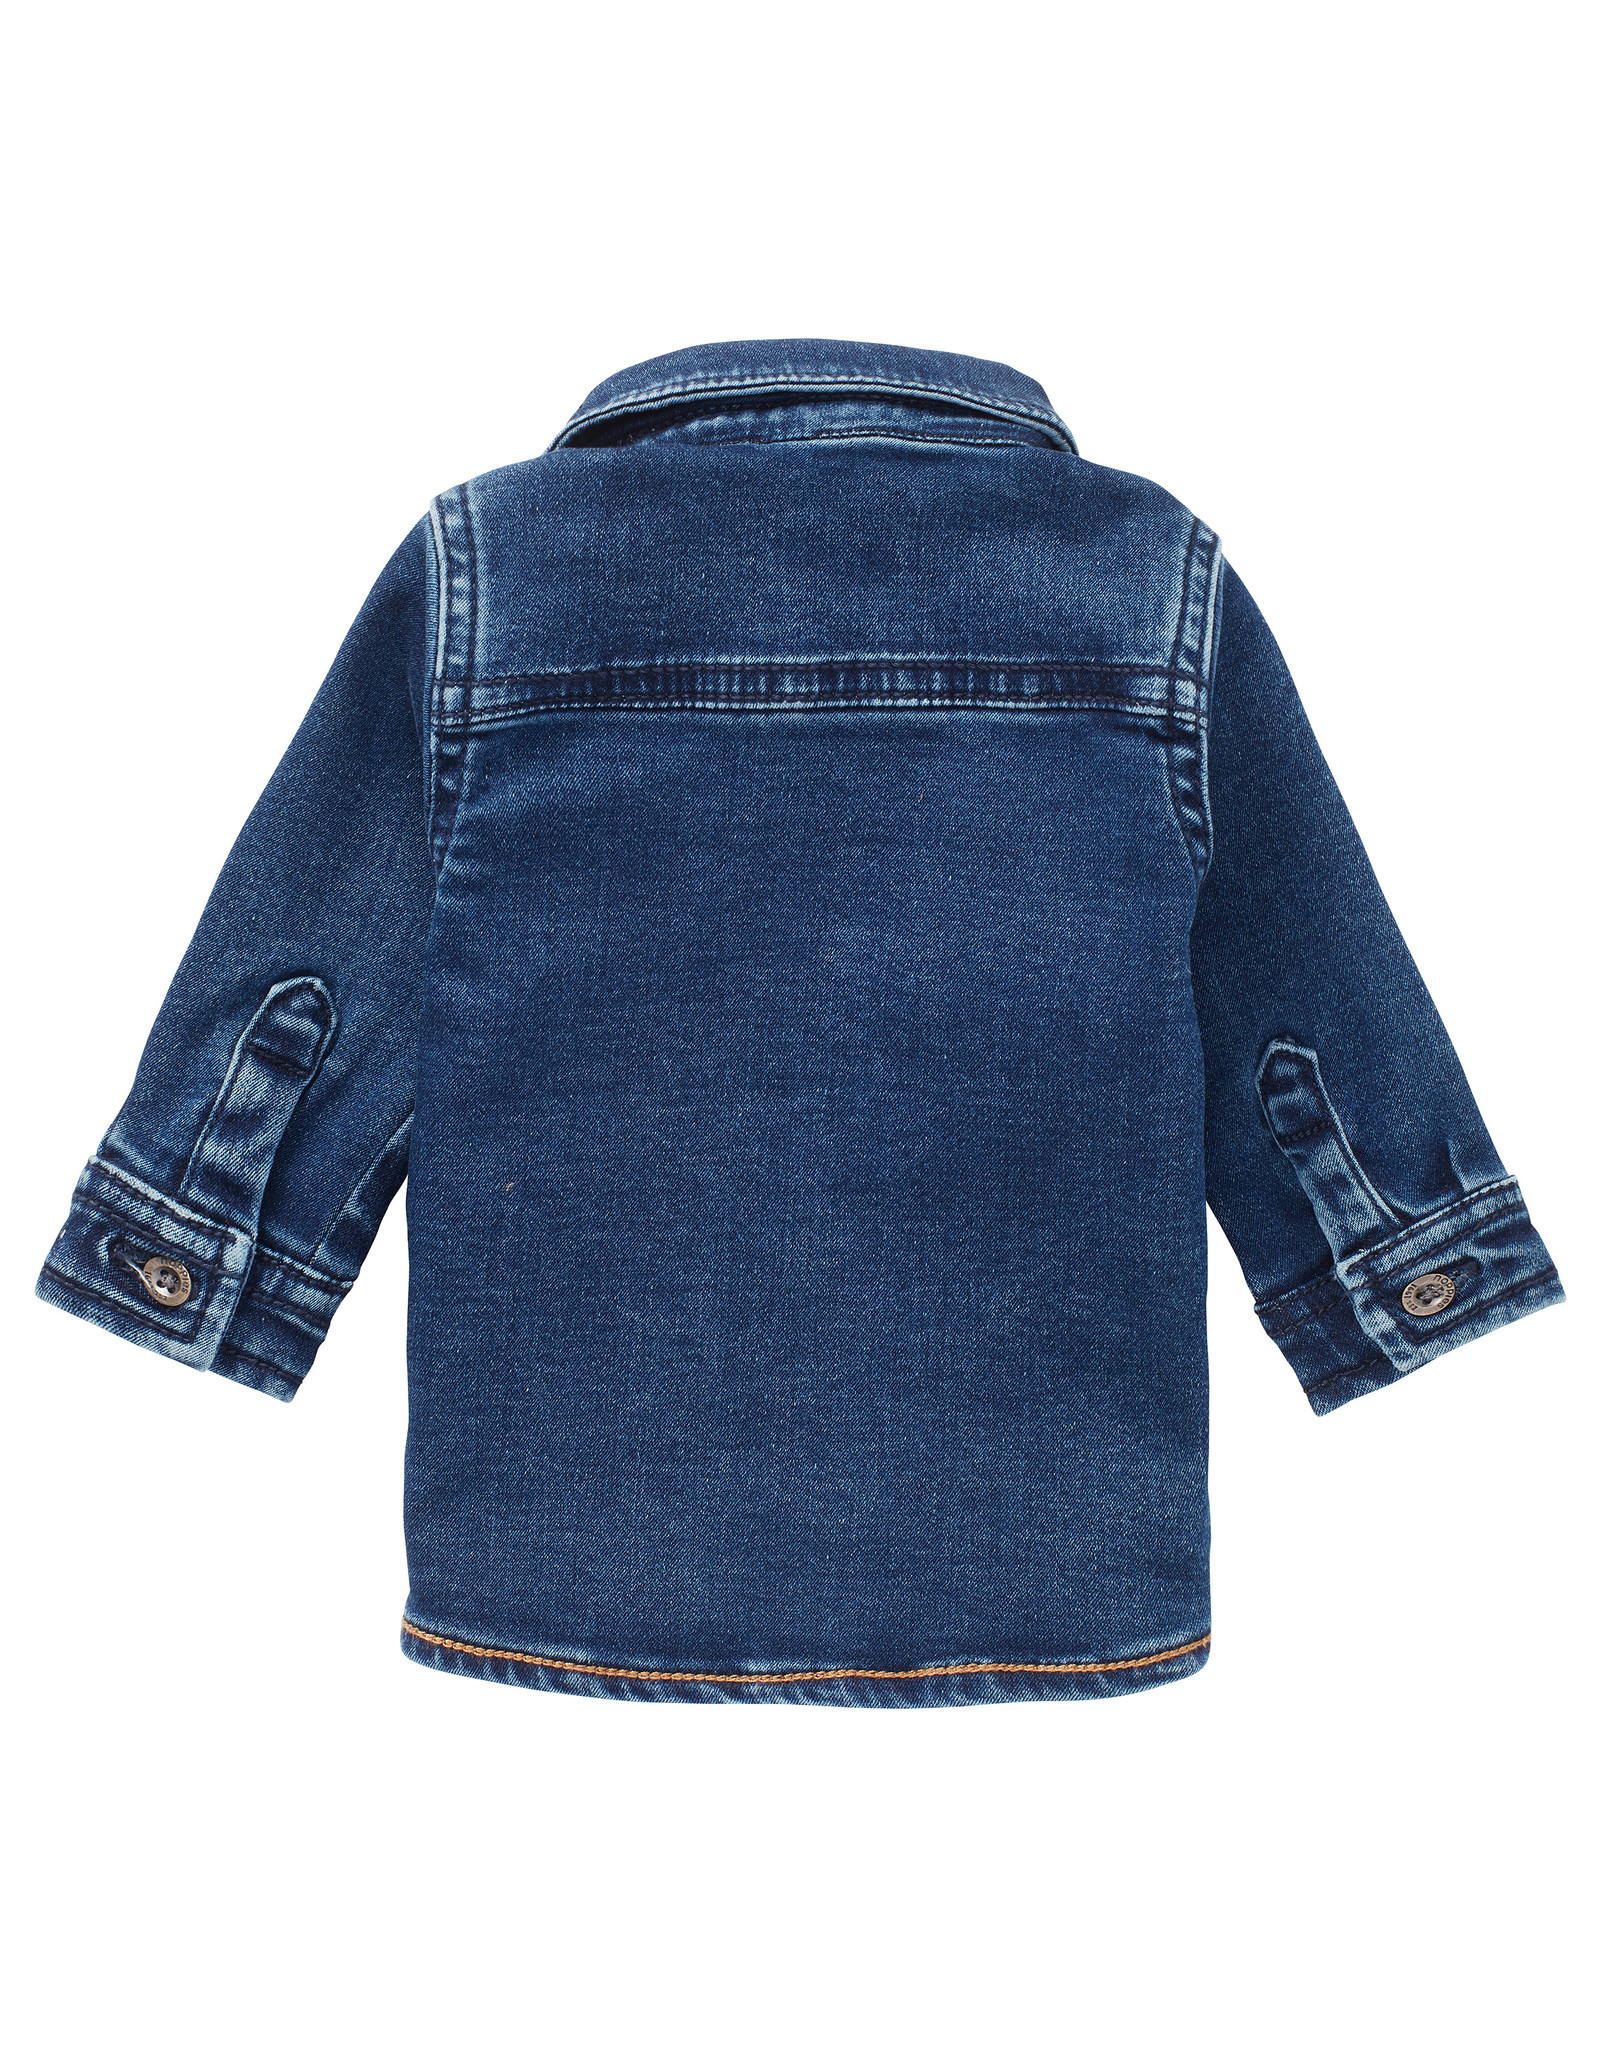 Noppies B shirt LS Tadley jogdenim, Medium Blue Wash